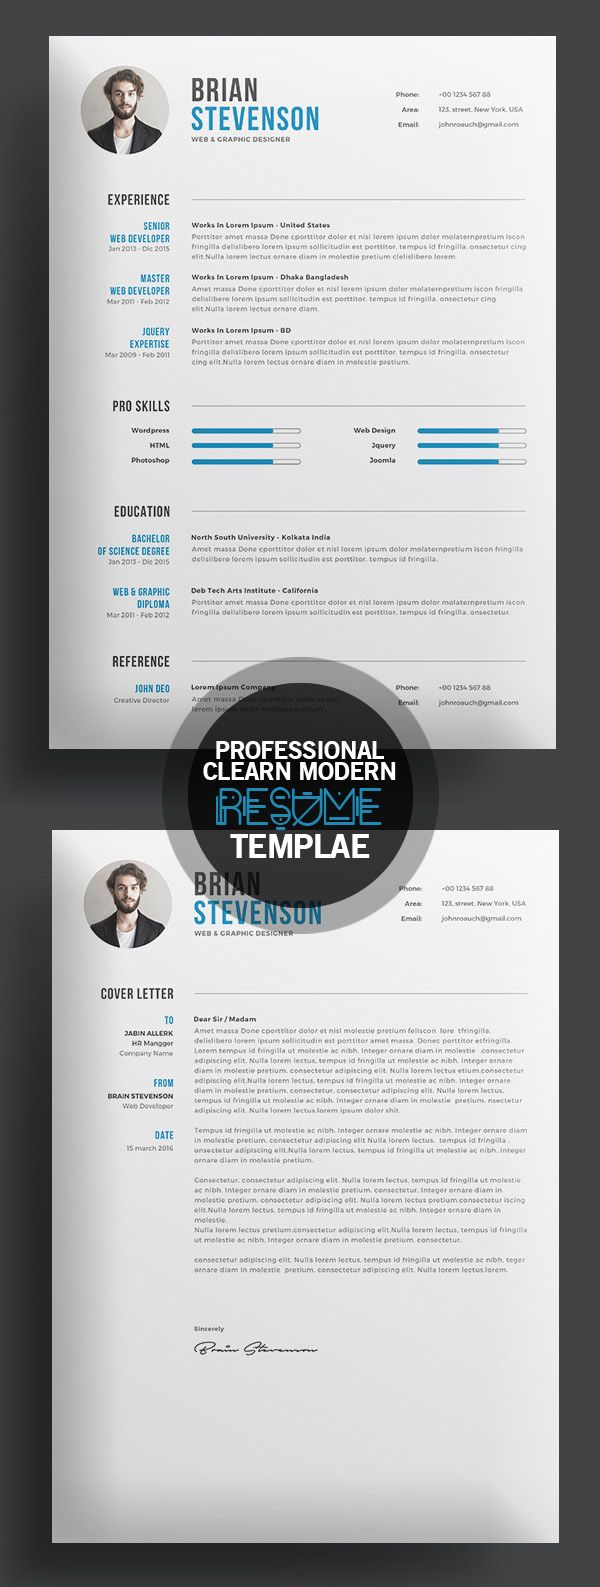 best ideas about resume templates resume resume the modern resume cv templates are made in adobe photoshop and illustrator and converted into ms word if you can use ms word like a beginner then you can